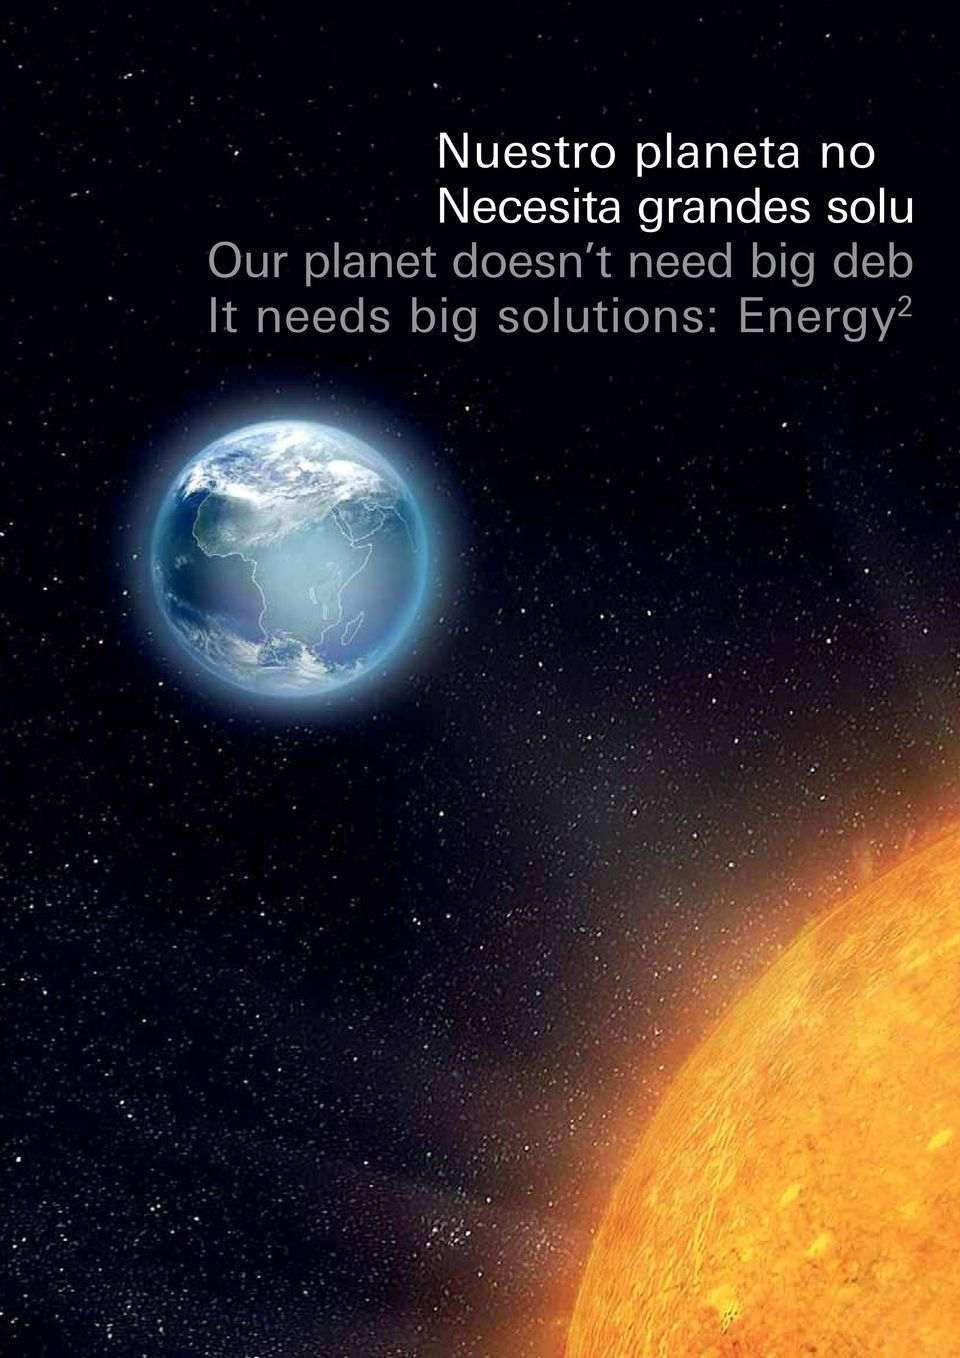 planet doesn t need big